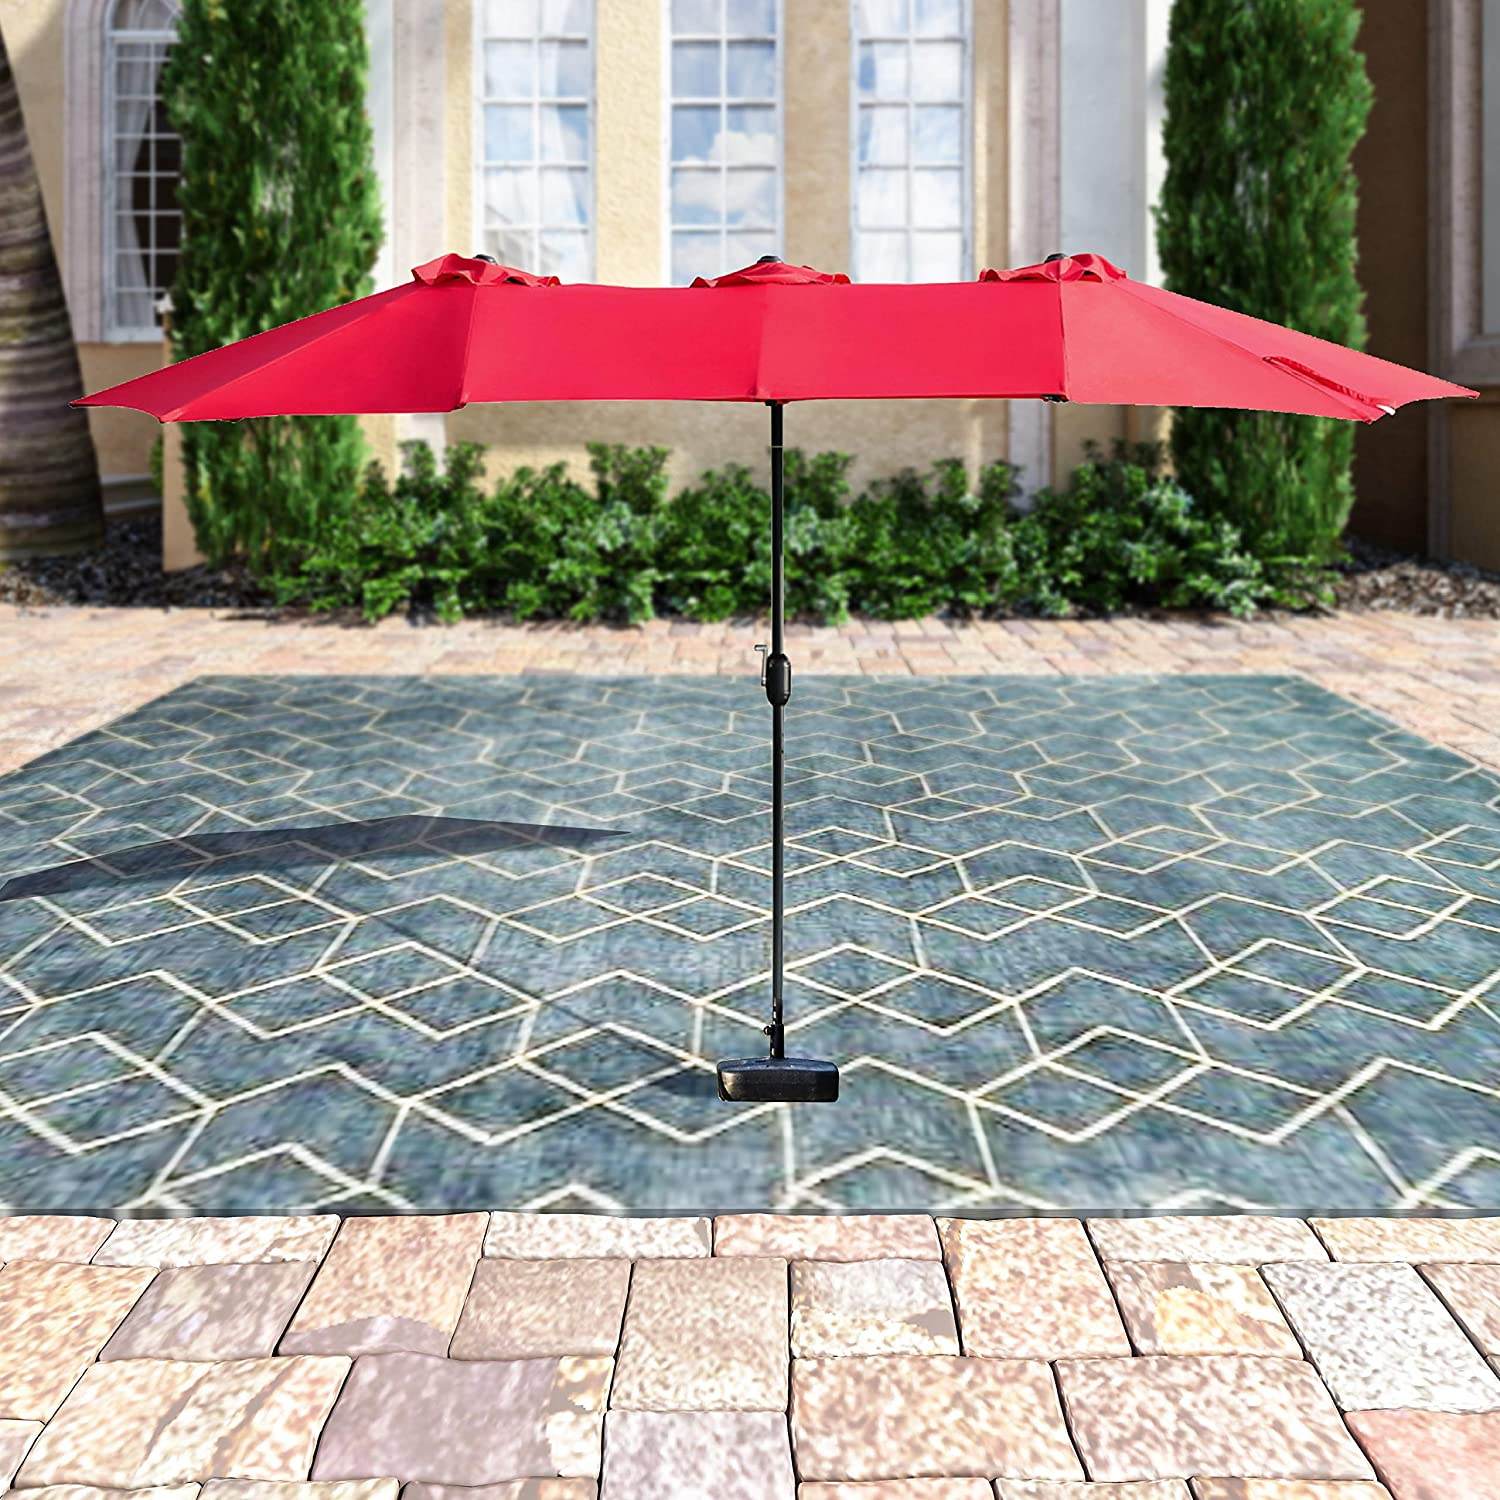 Middle, Brown PatioFestival Double-Sided Outdoor Umbrella,15x9 Feet Aluminum Garden Large Umbrella with Crank for Market,Camping,Swimming Pool